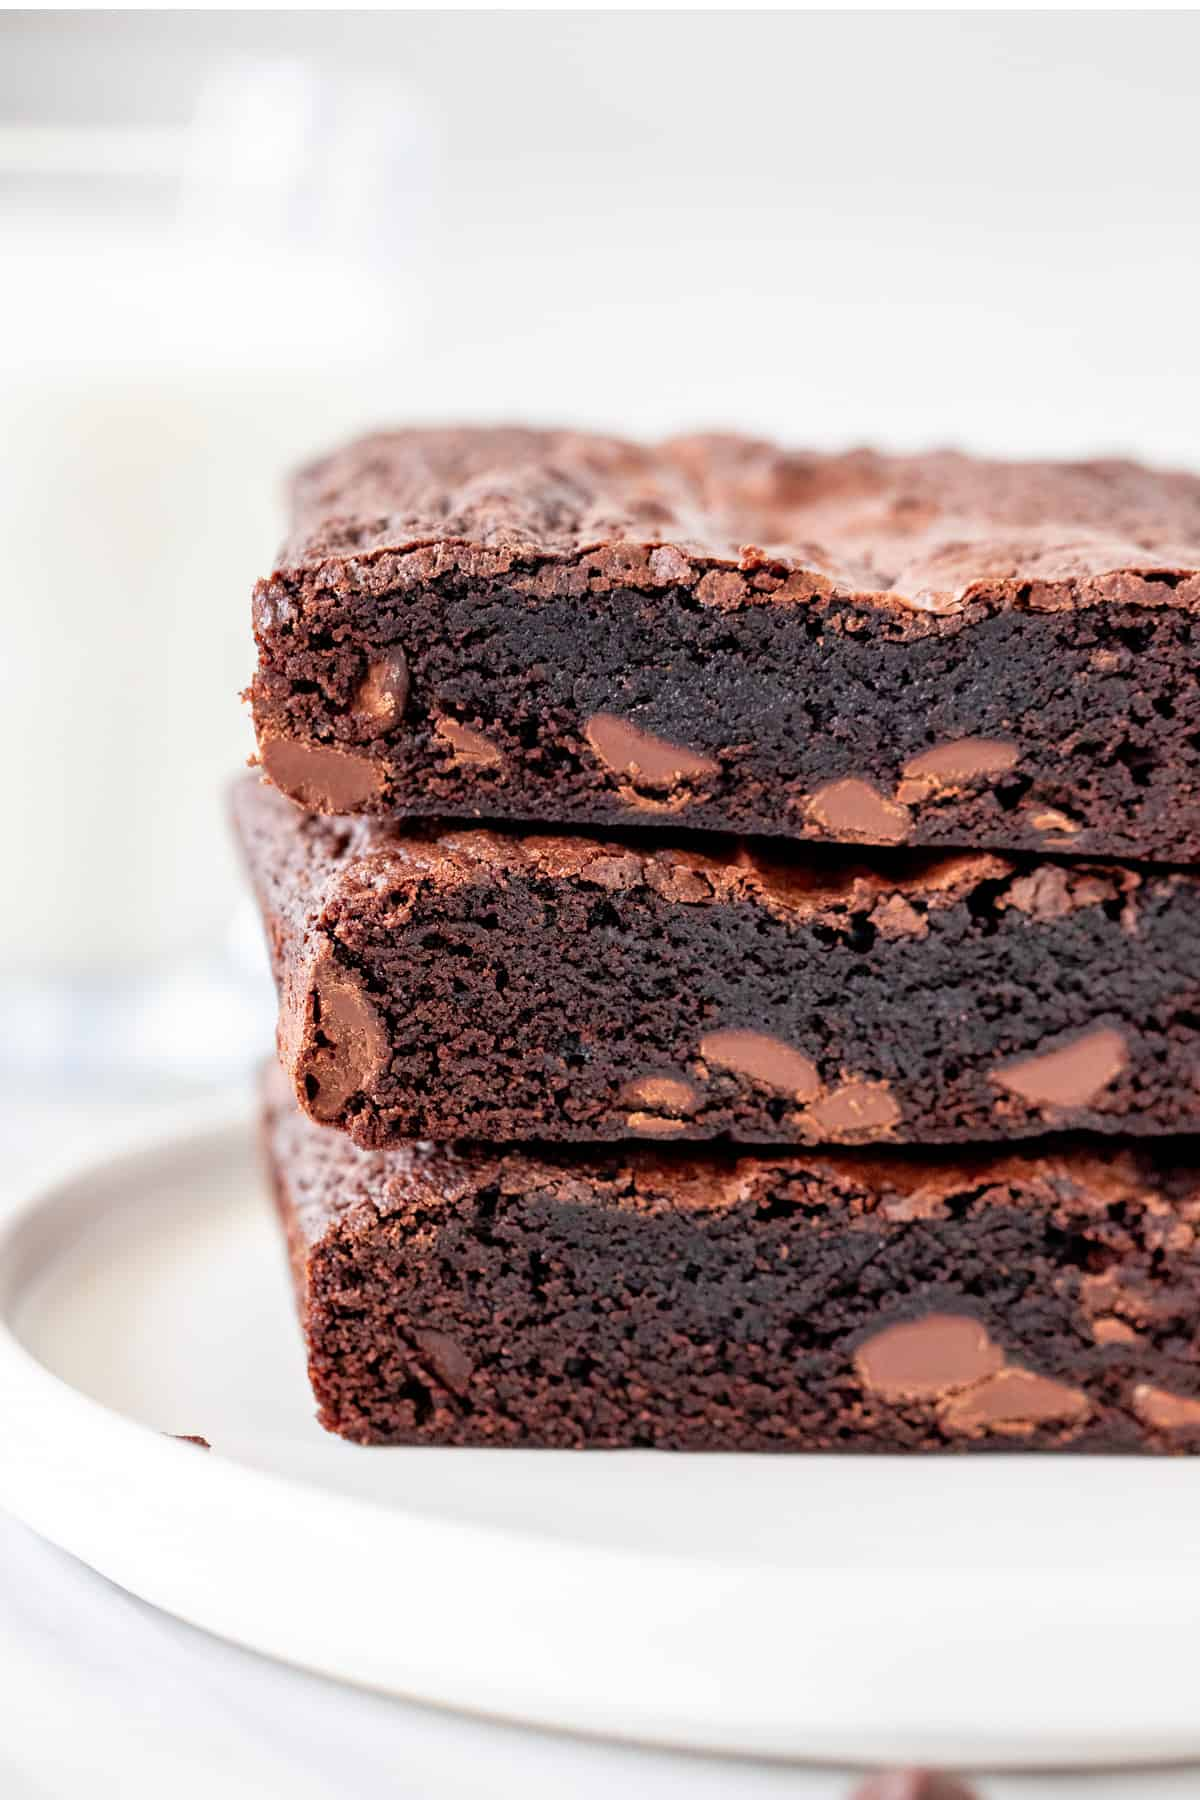 Stack of 3 brownies